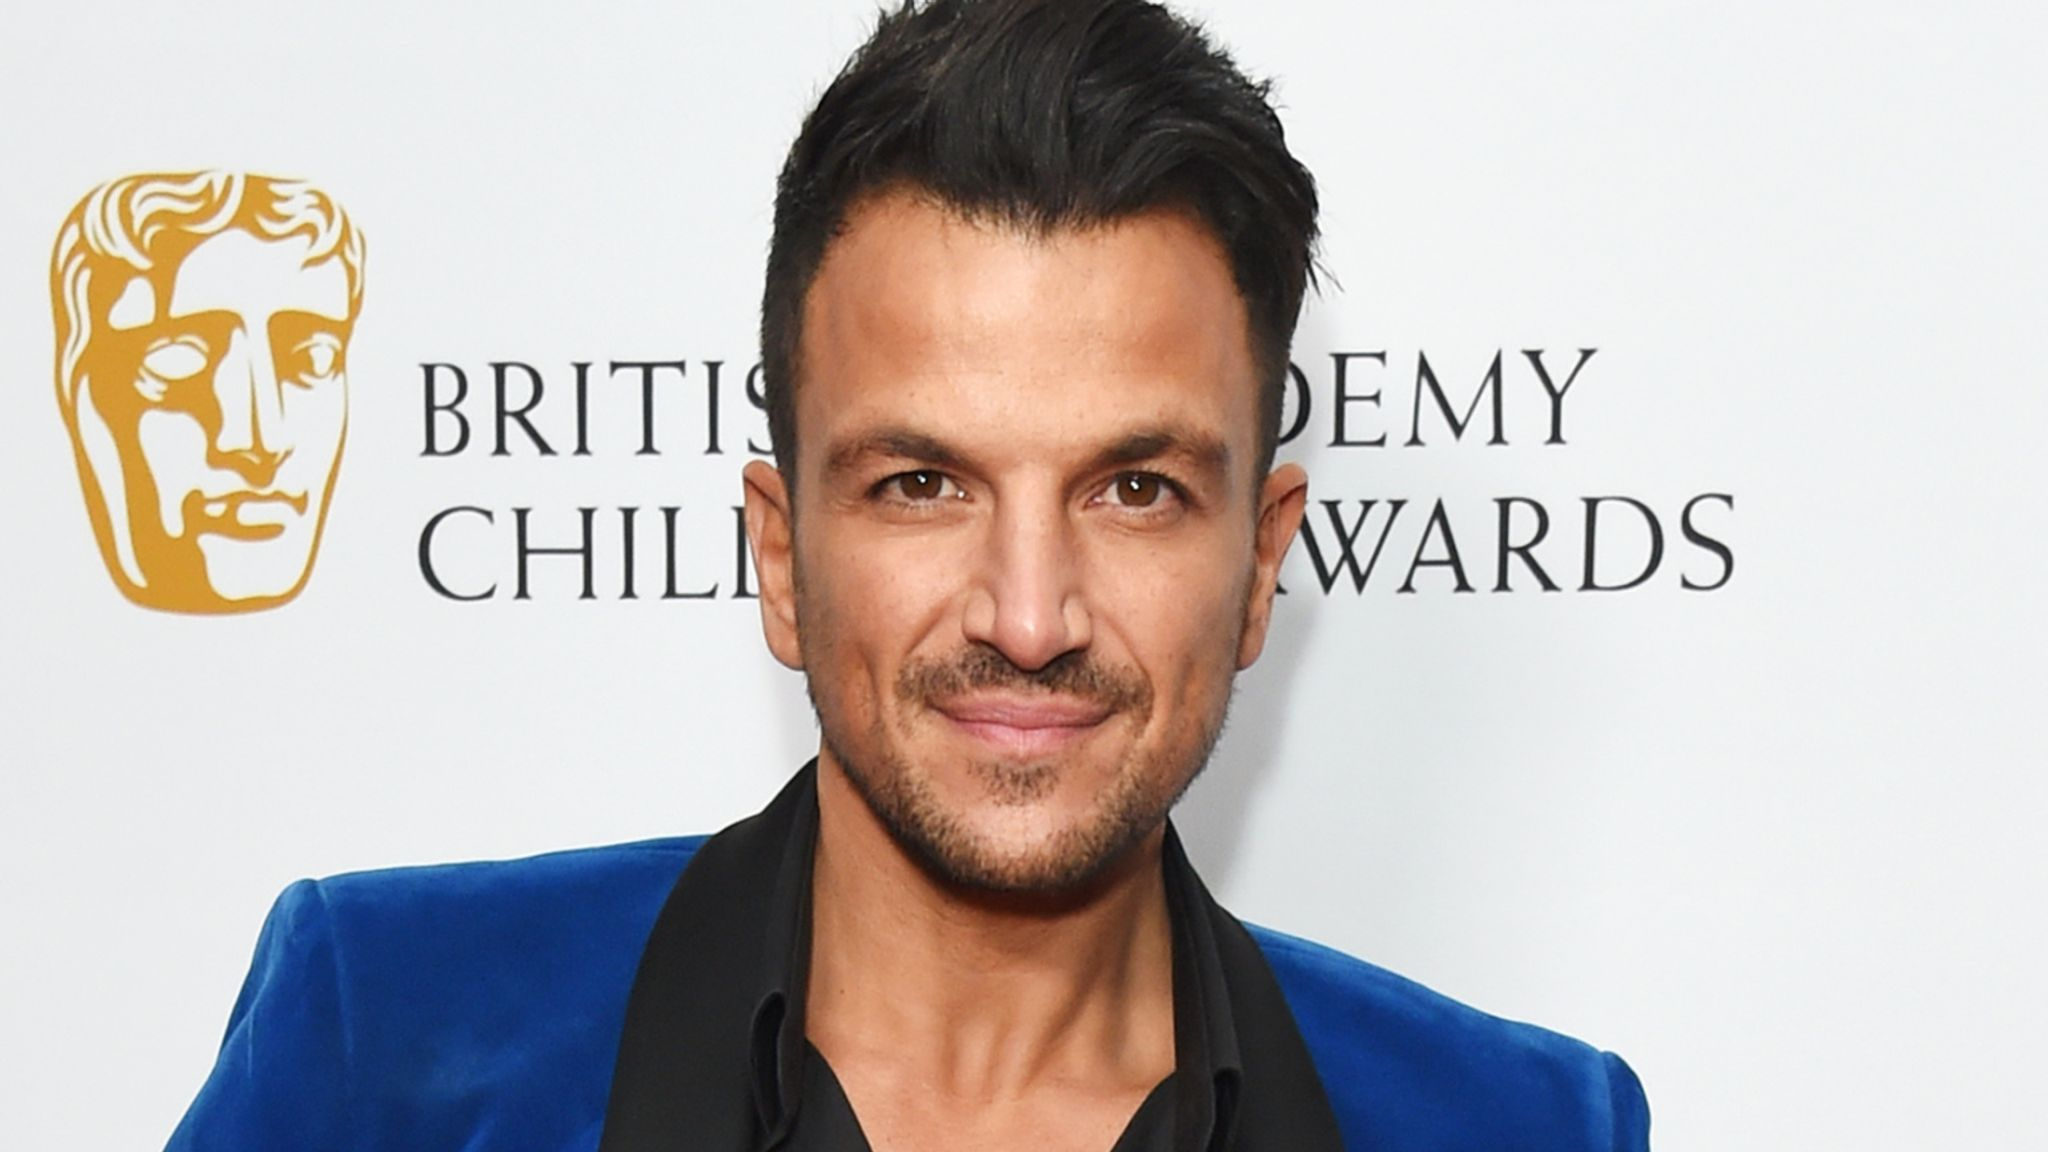 Peter Andre Denies Refusing To Touch Fans Over Coronavirus Fears Ents Arts News Sky News